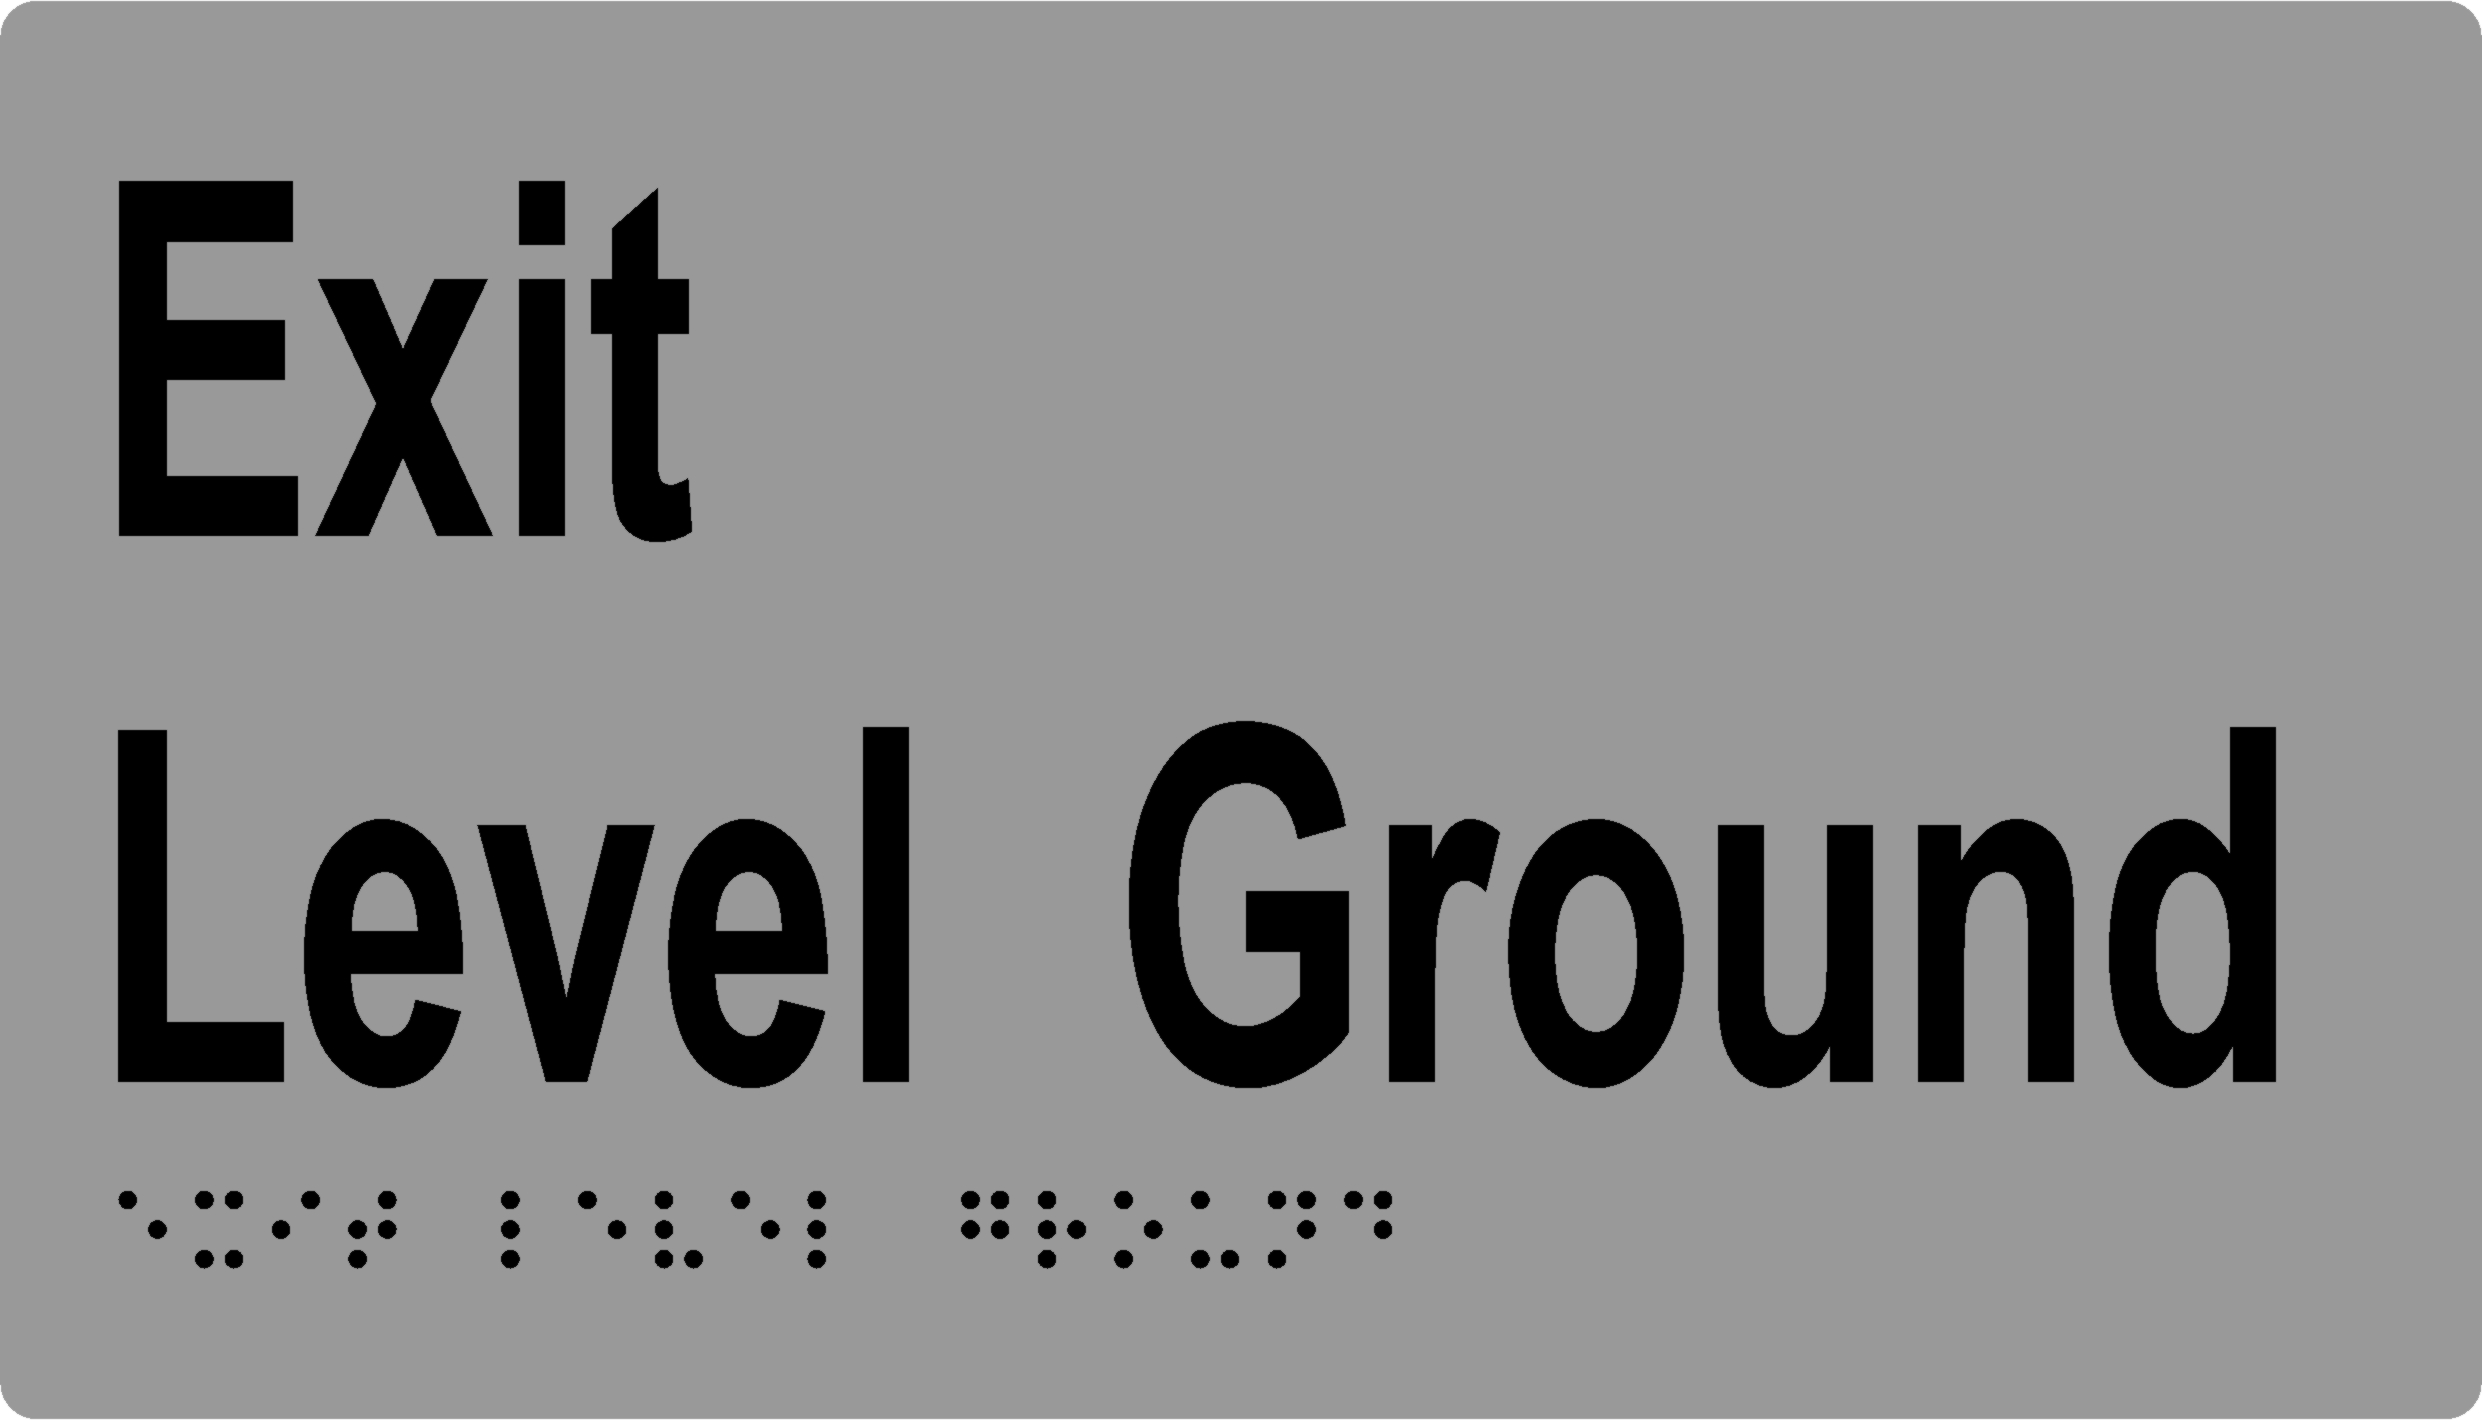 'Exit Level Ground' Sign: Braille